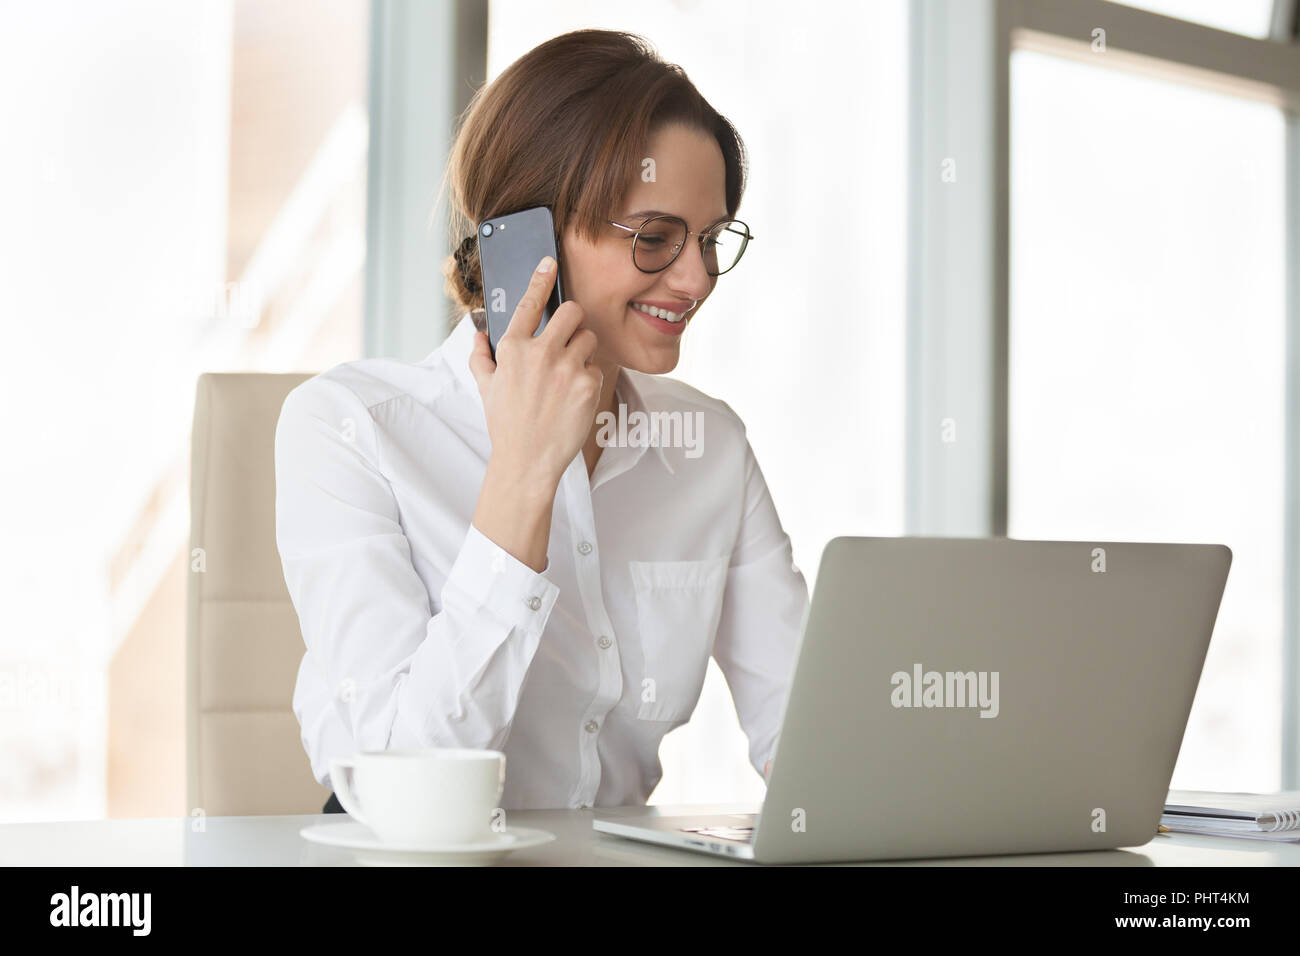 Smiling confident businesswoman making phone call using laptop i - Stock Image